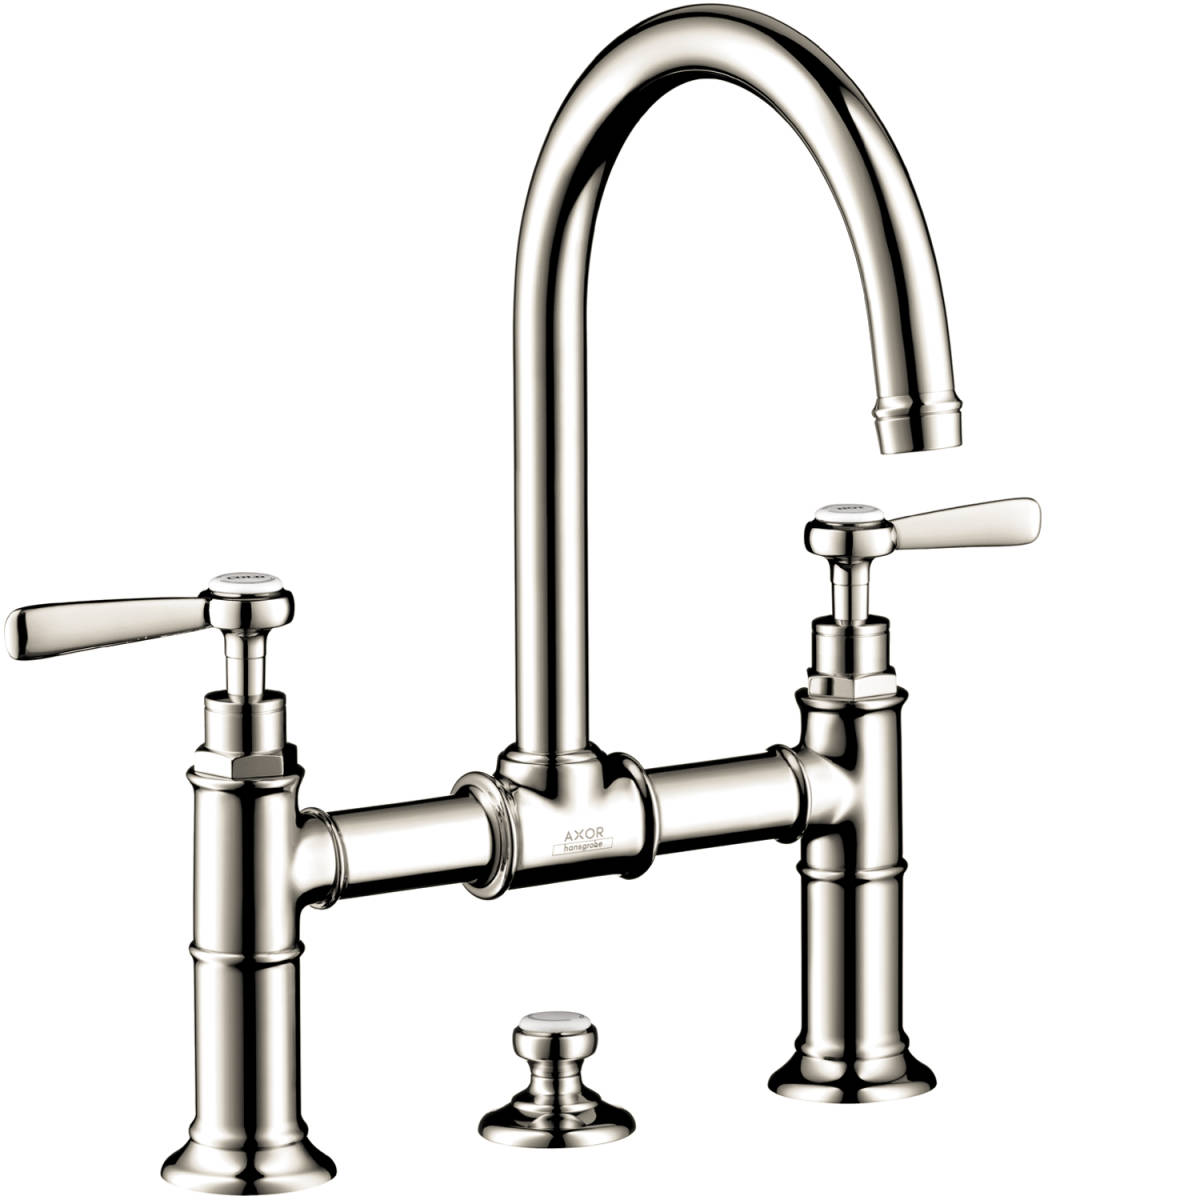 2-handle basin mixer 220 with lever handles and pop-up waste set, Polished Nickel, 16511831